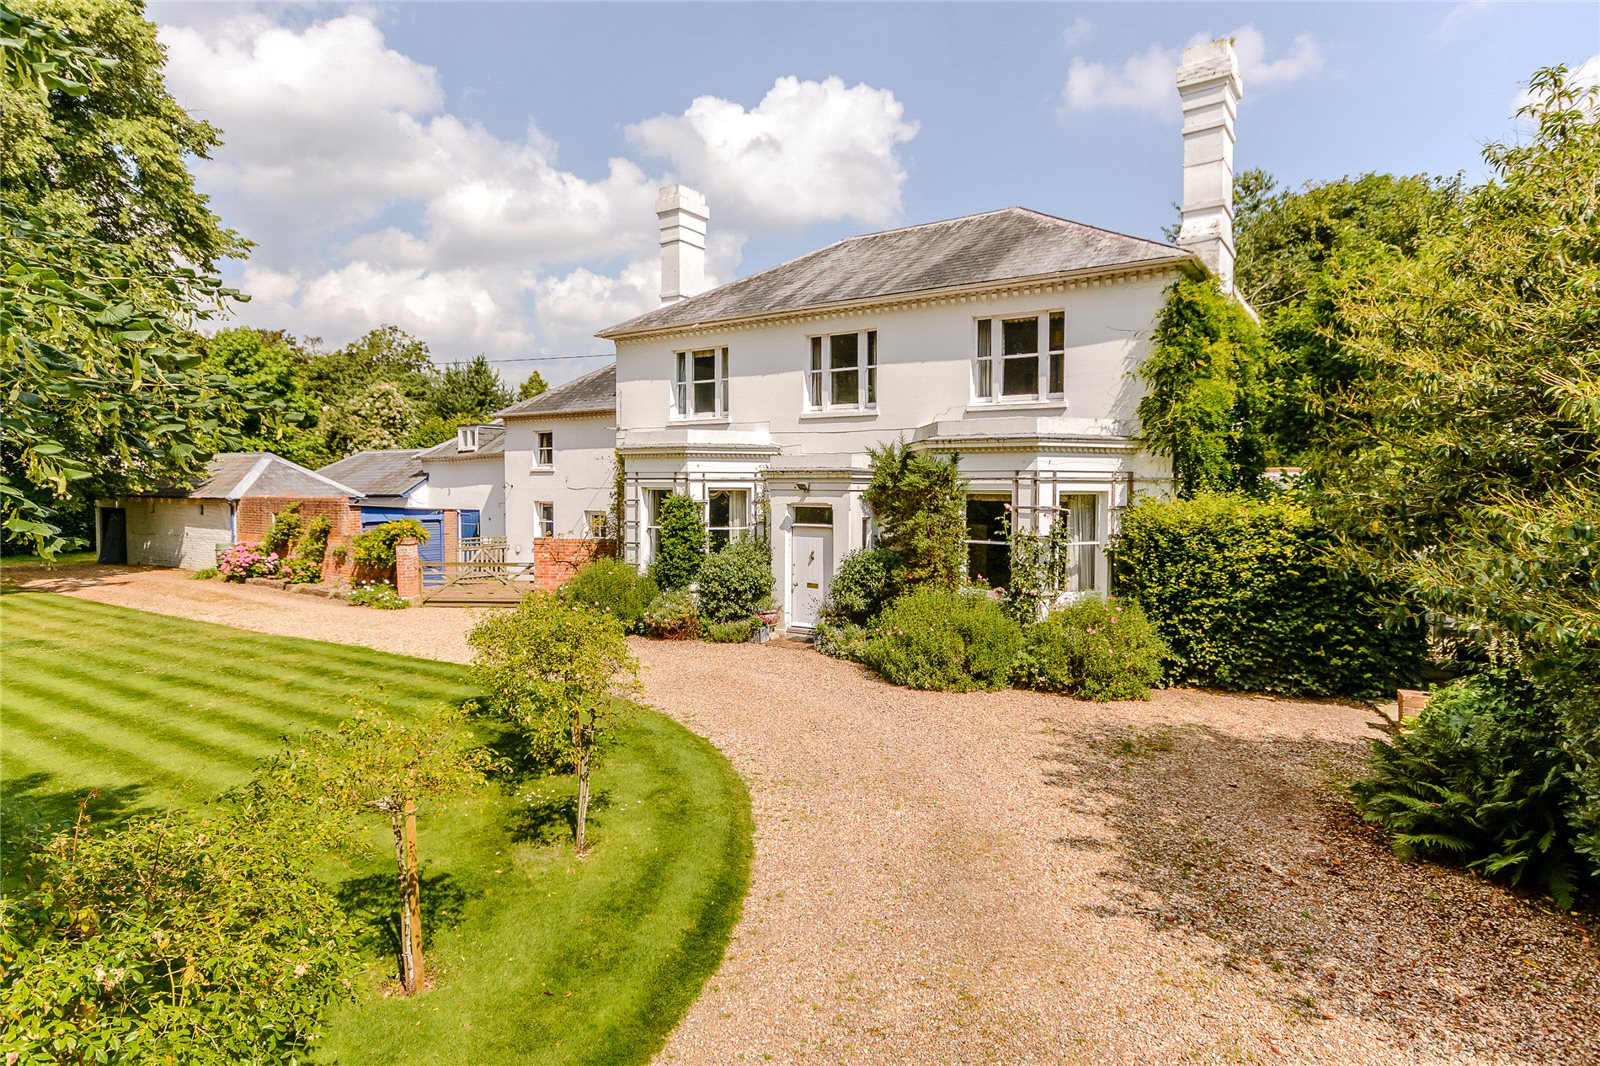 Villa per Vendita alle ore Thackhams Lane, Hartley Wintney, Hampshire, RG27 Hartley Wintney, Inghilterra